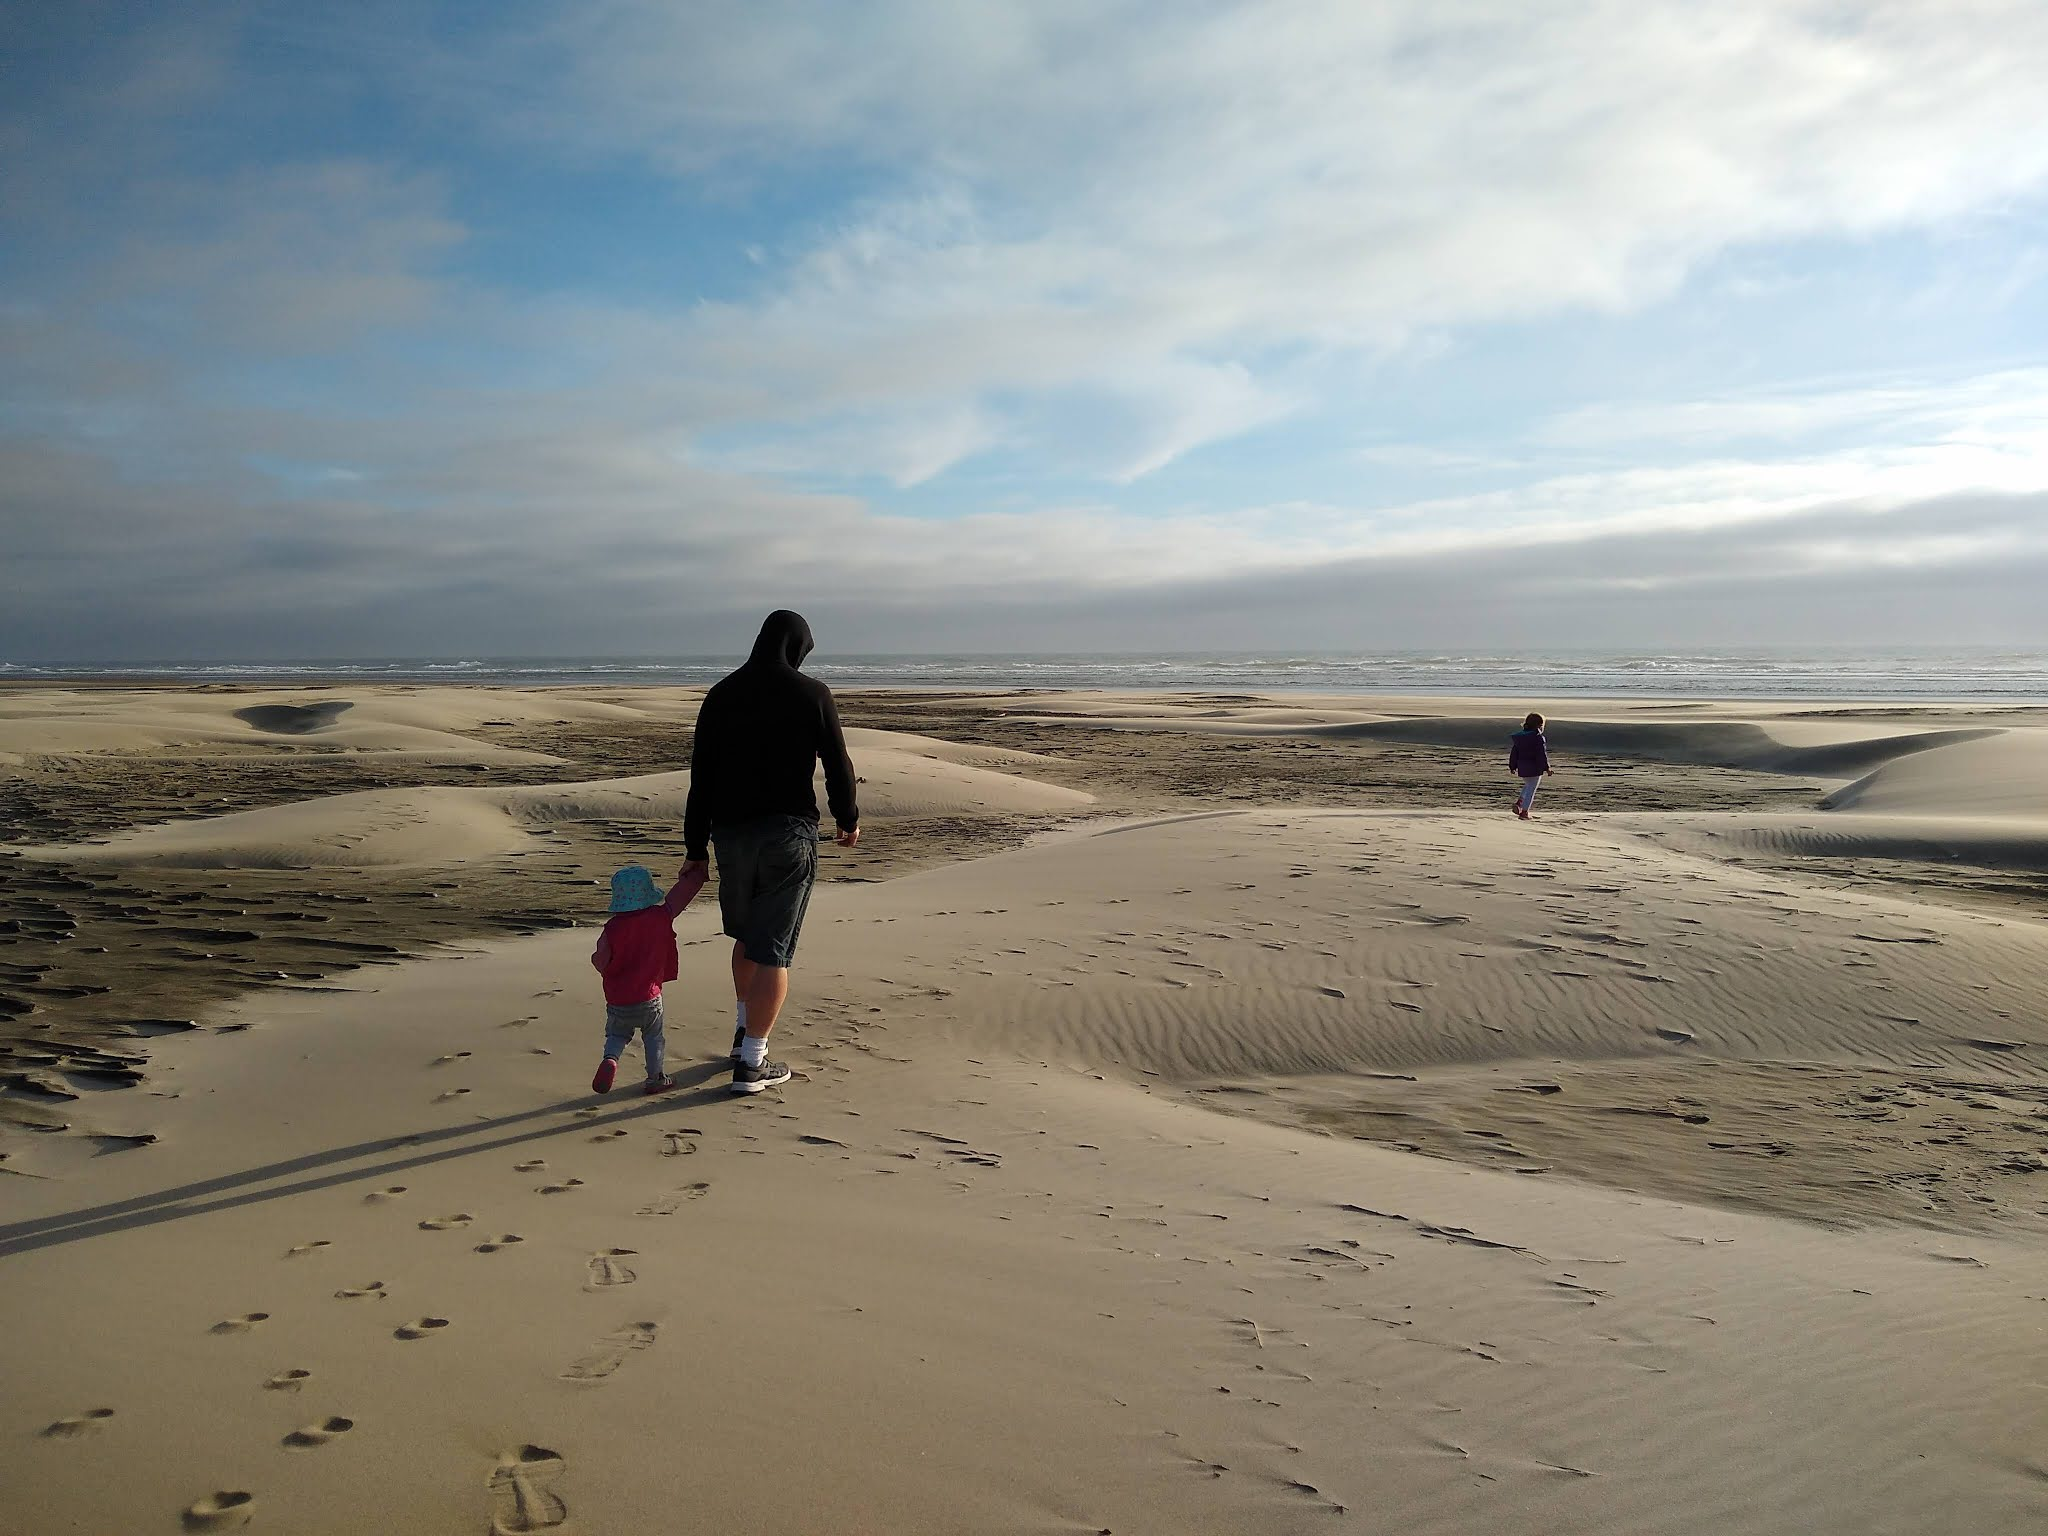 A toddler holding her father's hand on a sandy beach.